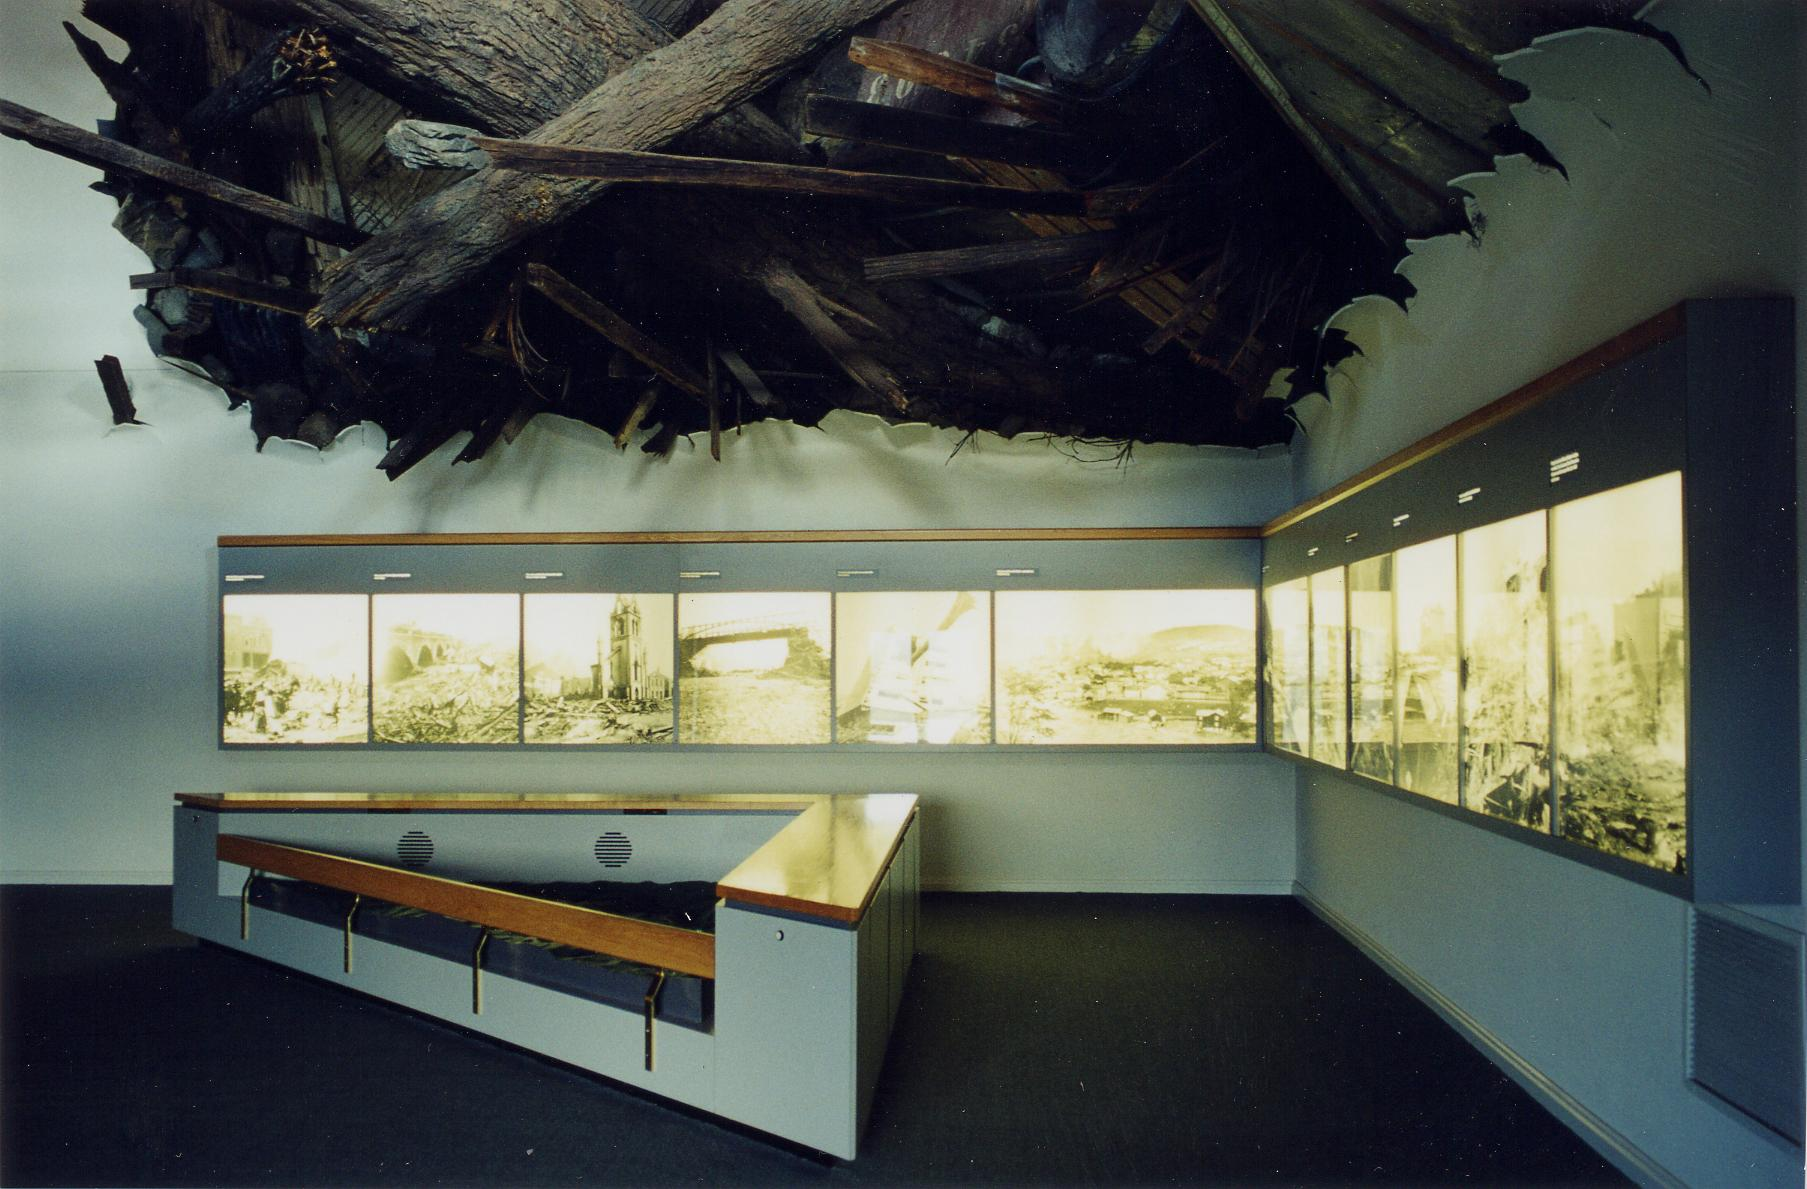 The museum includes a variety of exhibits that preserve the history of the flood that killed 2,209 residents in 1889.